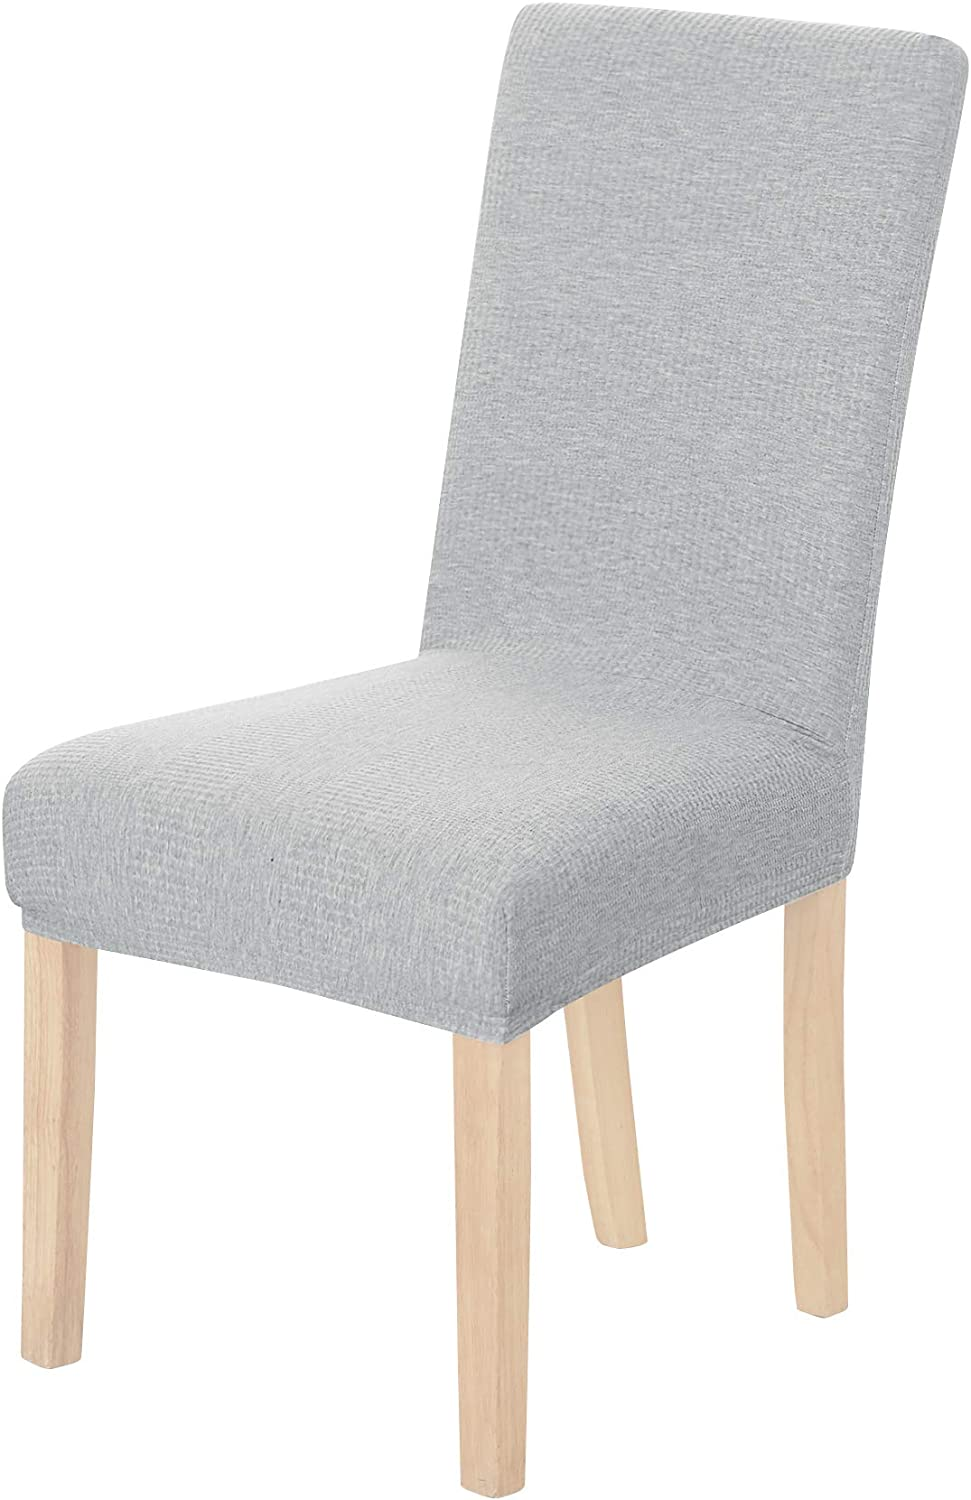 Deconovo Chair Cover Wavy Line Knitted Elastic Chair Slipcover for Dining Room Light Grey Set of 6